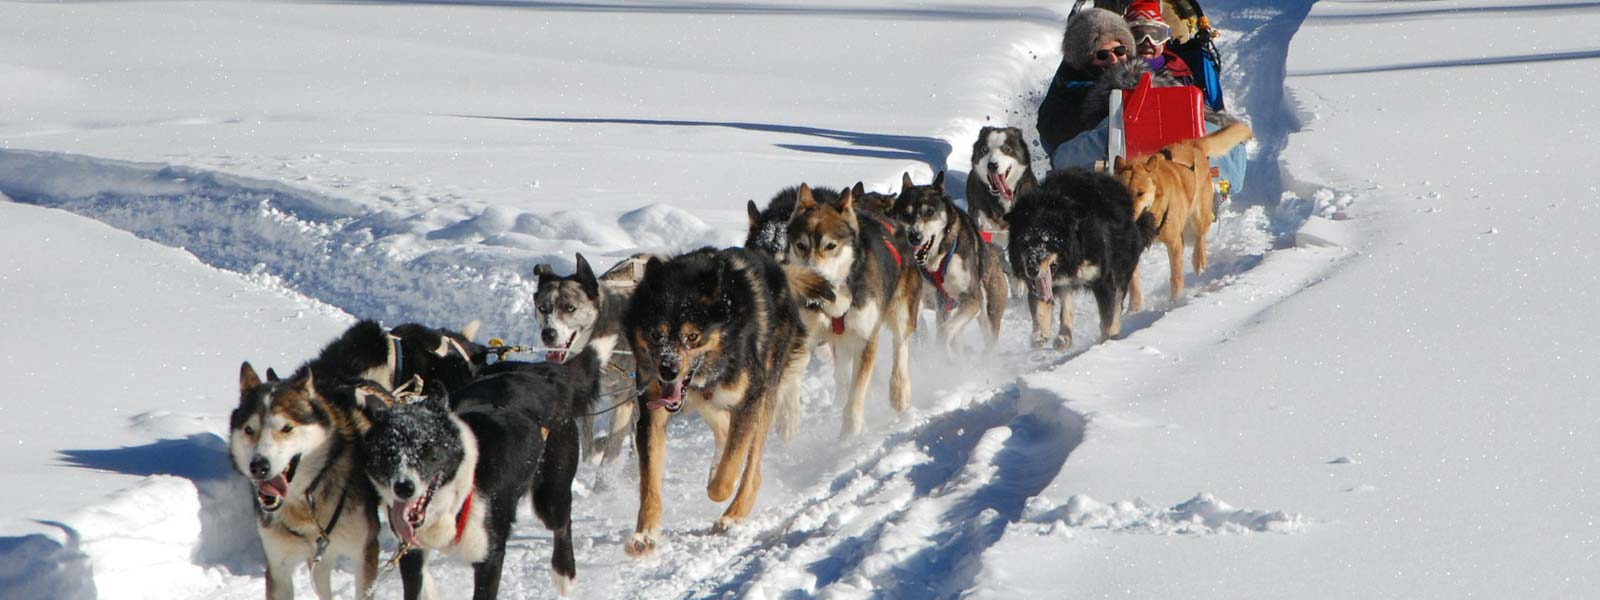 Enjoy Dog Sledding in Whistler